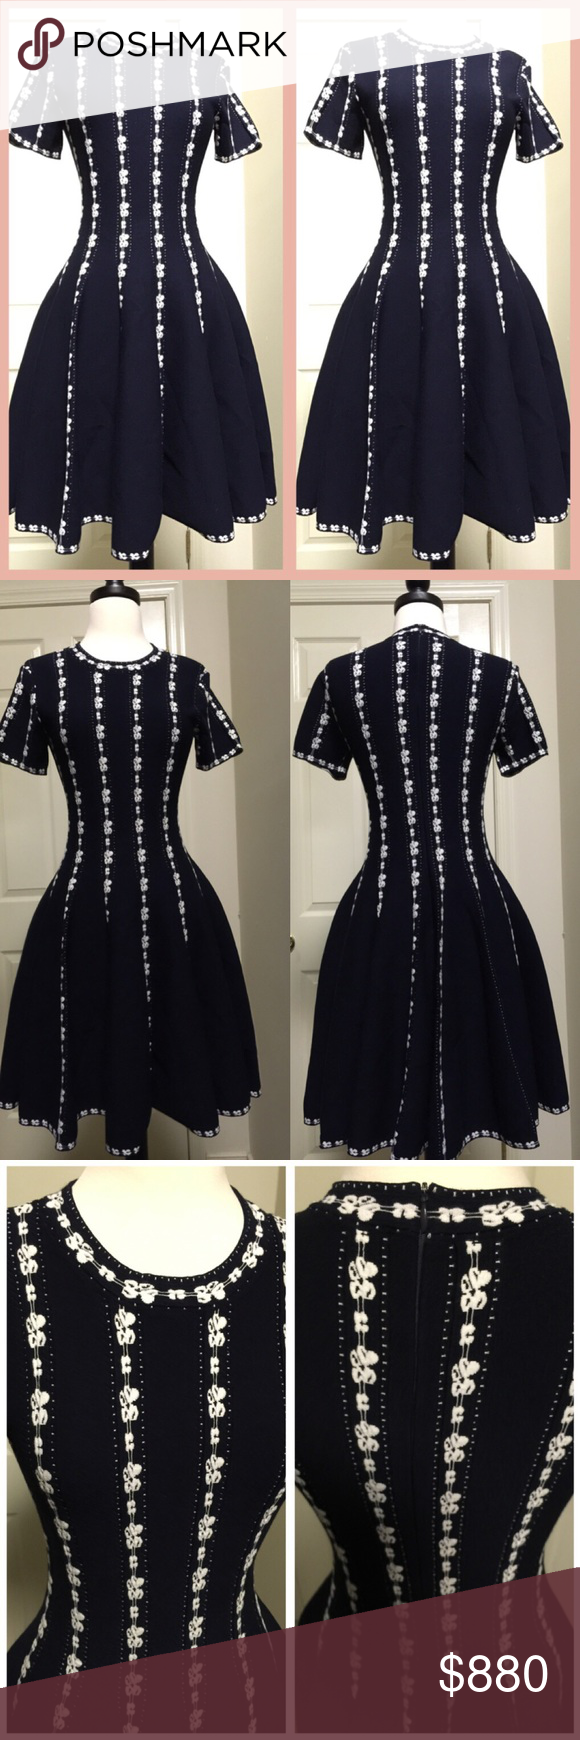 c5701344153 NEW Alaia short sleeve dress 40 Up For sale is a new gorgeous ALAIA stretch  knit fit and flare dress in size 40. Color navy (size and care tag damaged)  ...